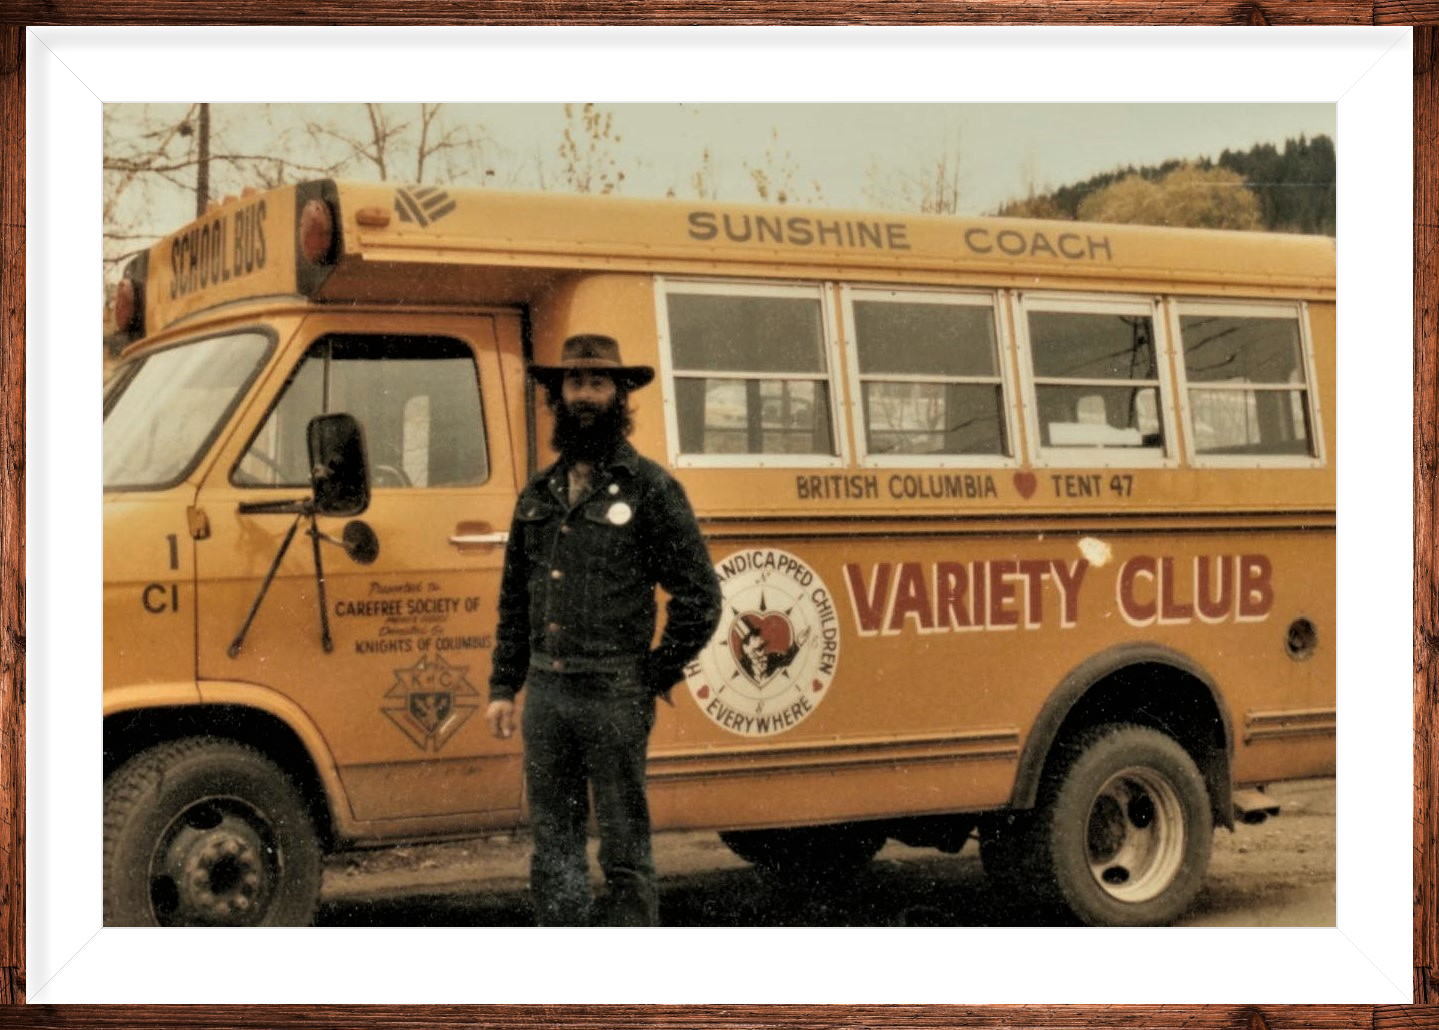 Don with Variety Club bus